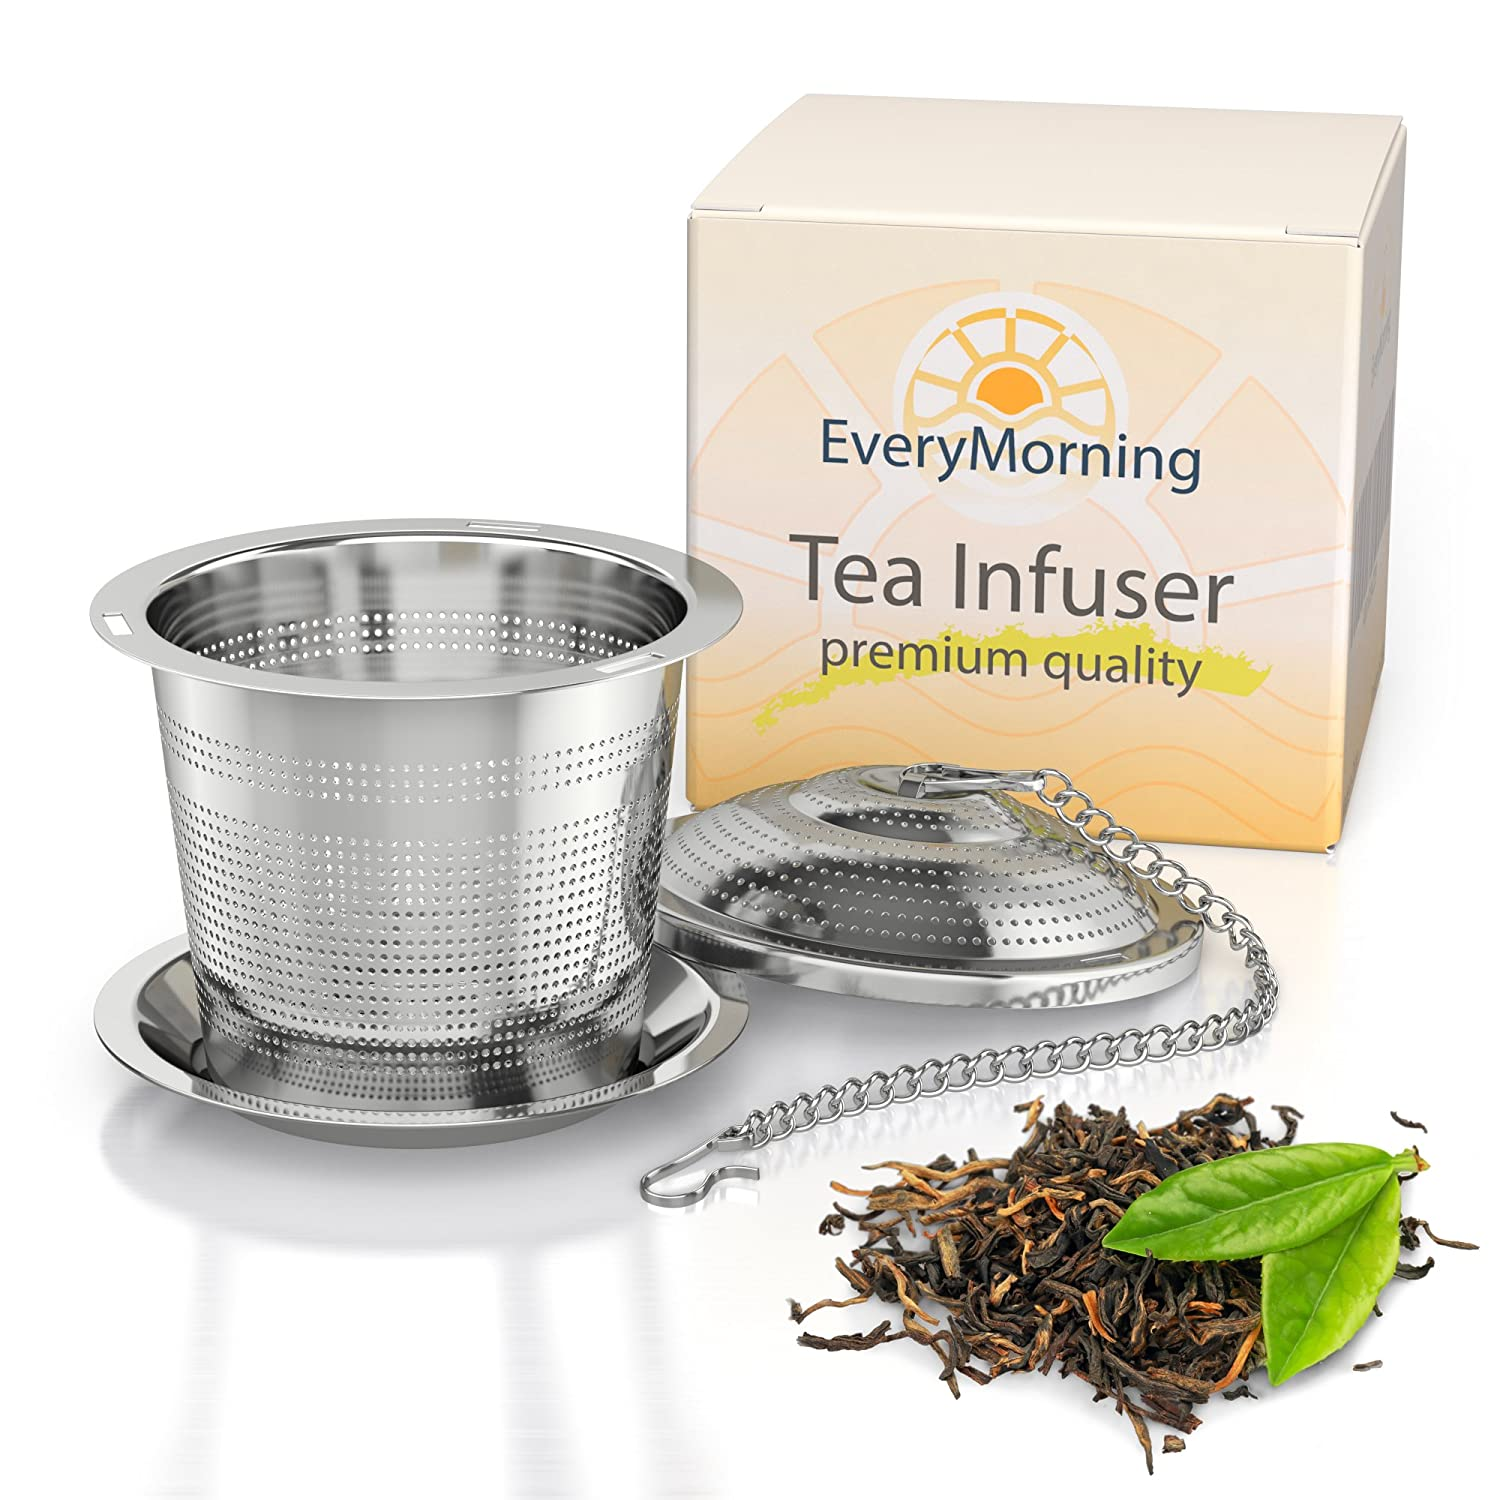 Deluxe Loose Leaf Tea Infuser.